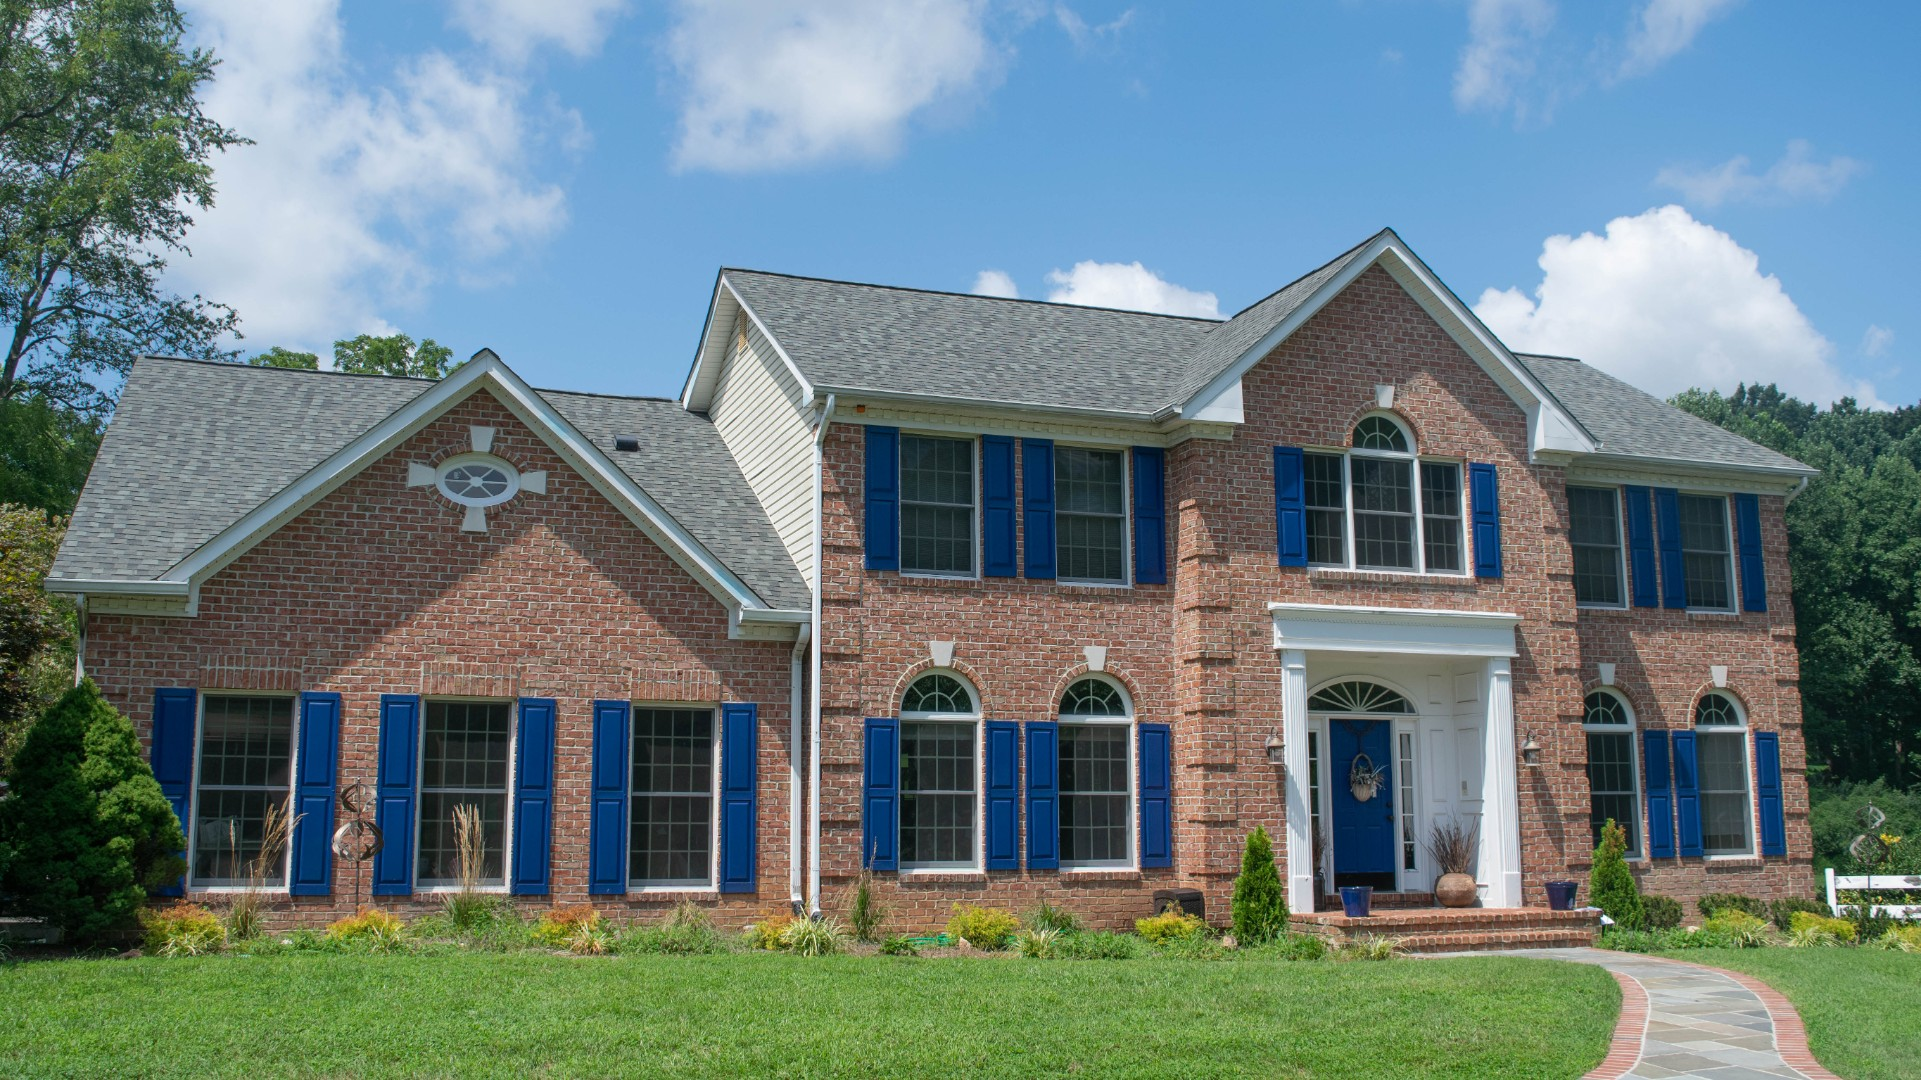 SmartRoof - Residential, Commercial Cherry Hill NJ Roofing Contractors